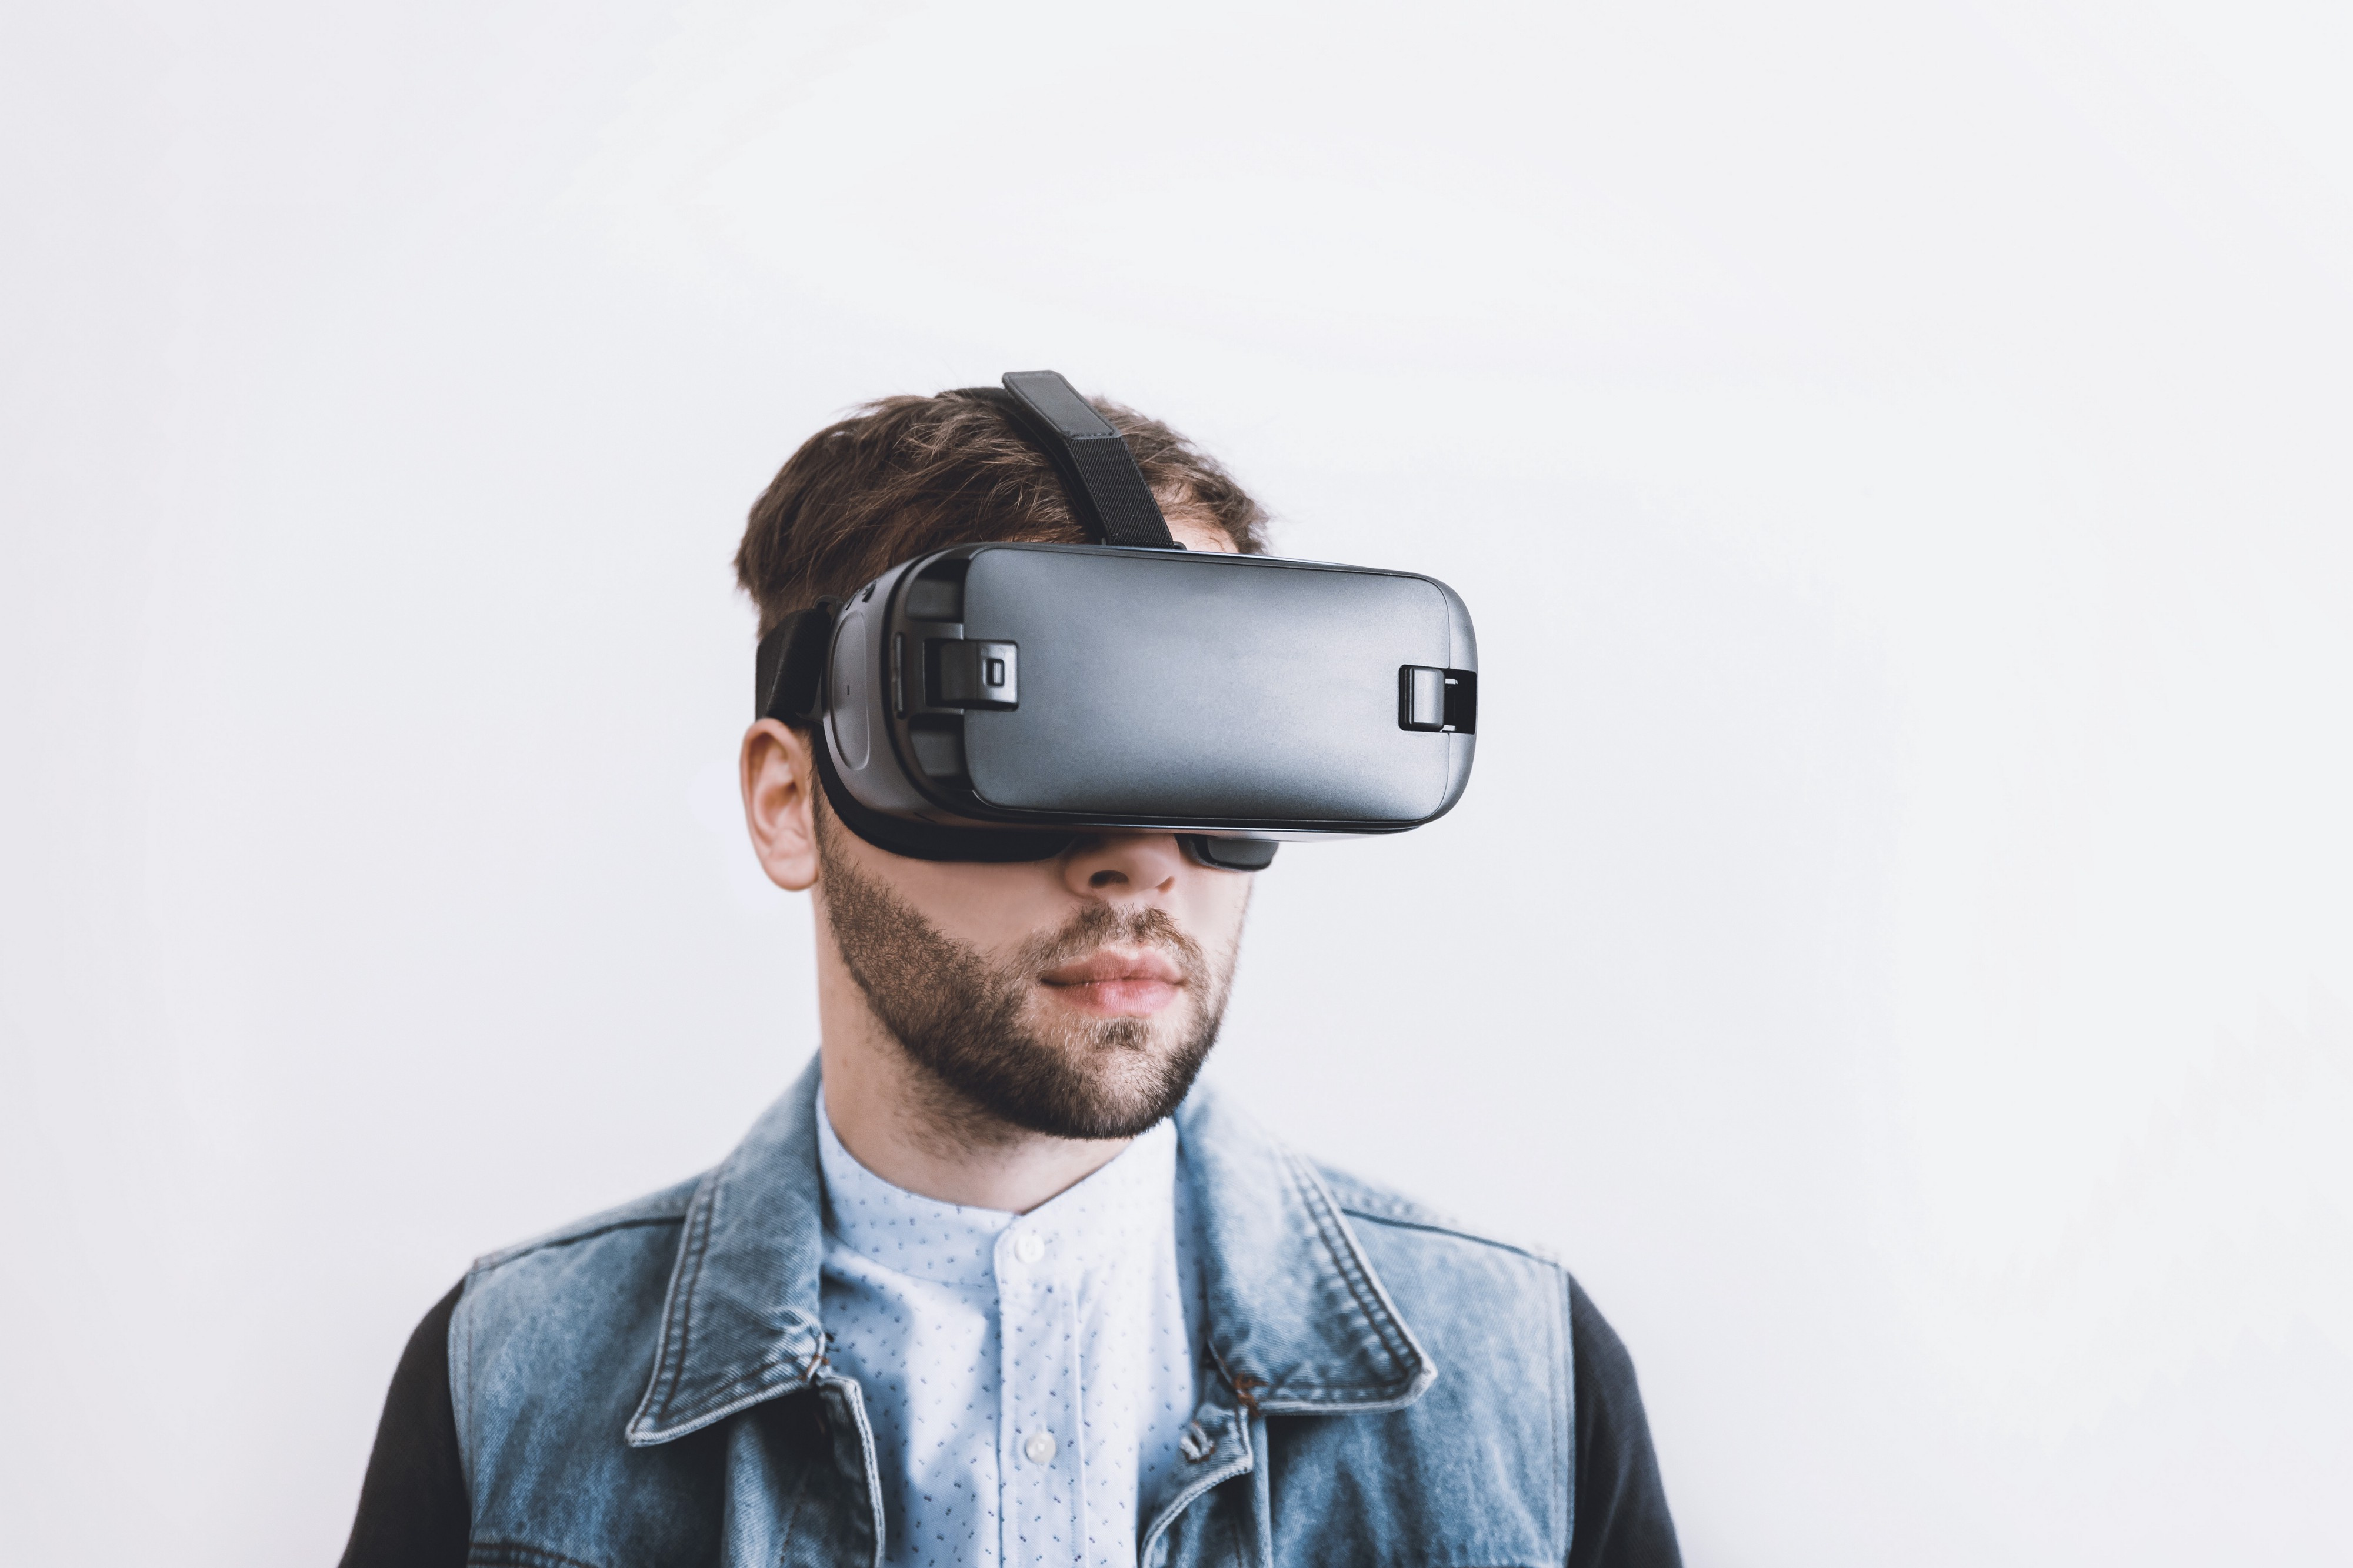 Male wearing virtual reality system over eyes